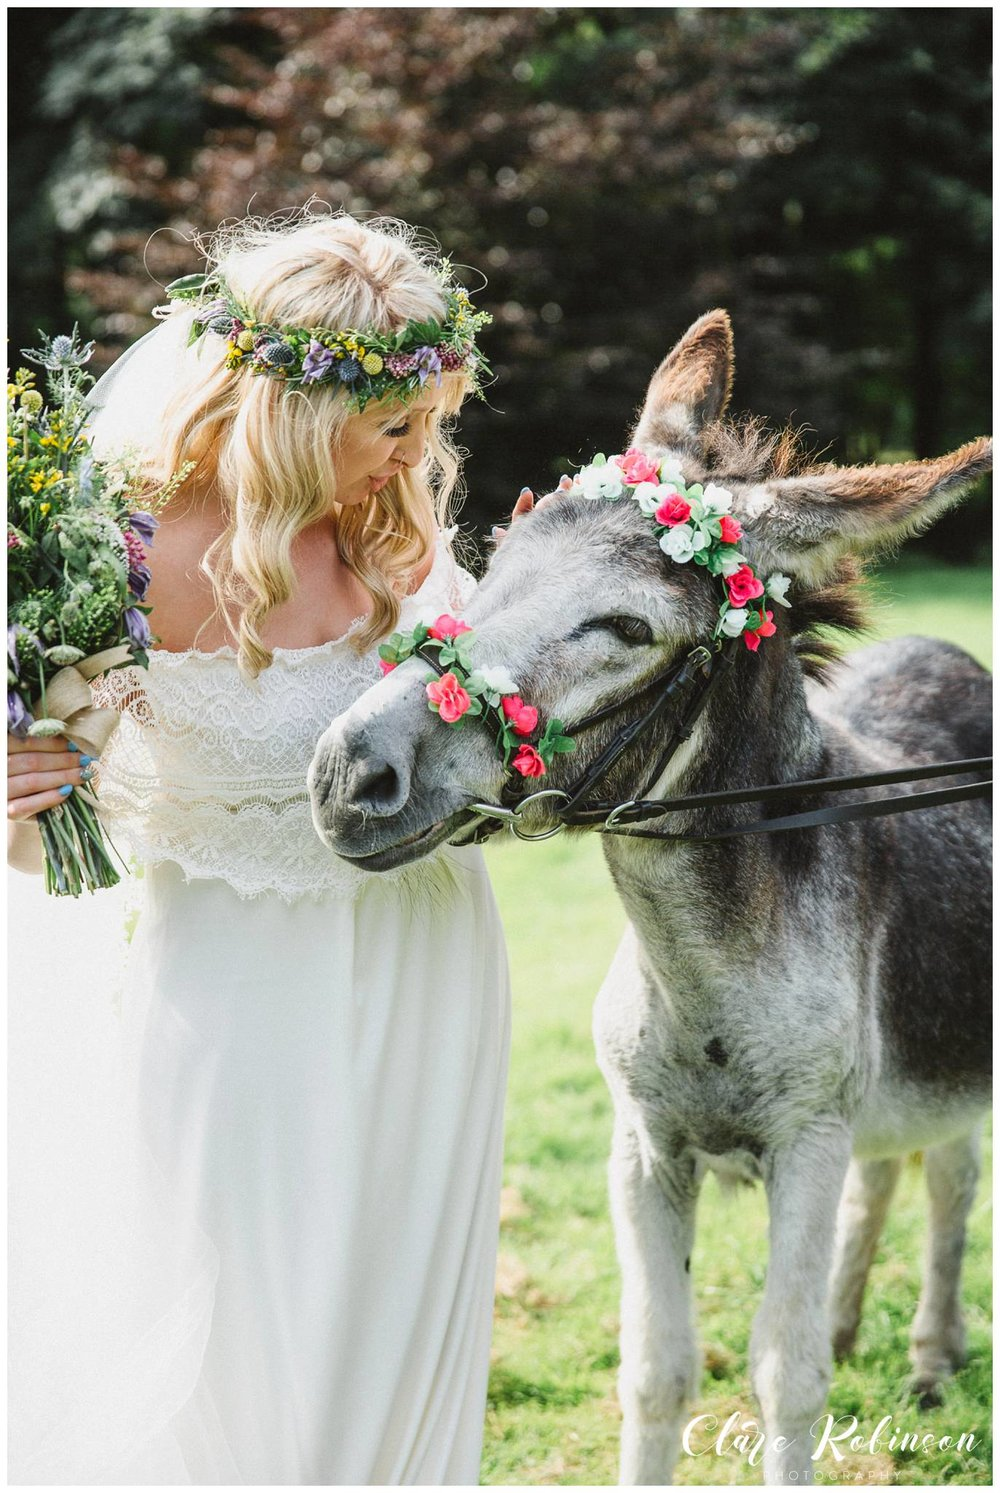 Bride looking and stroking donkey on the lawn at Rivington Barn - Lancashire wedding photographer